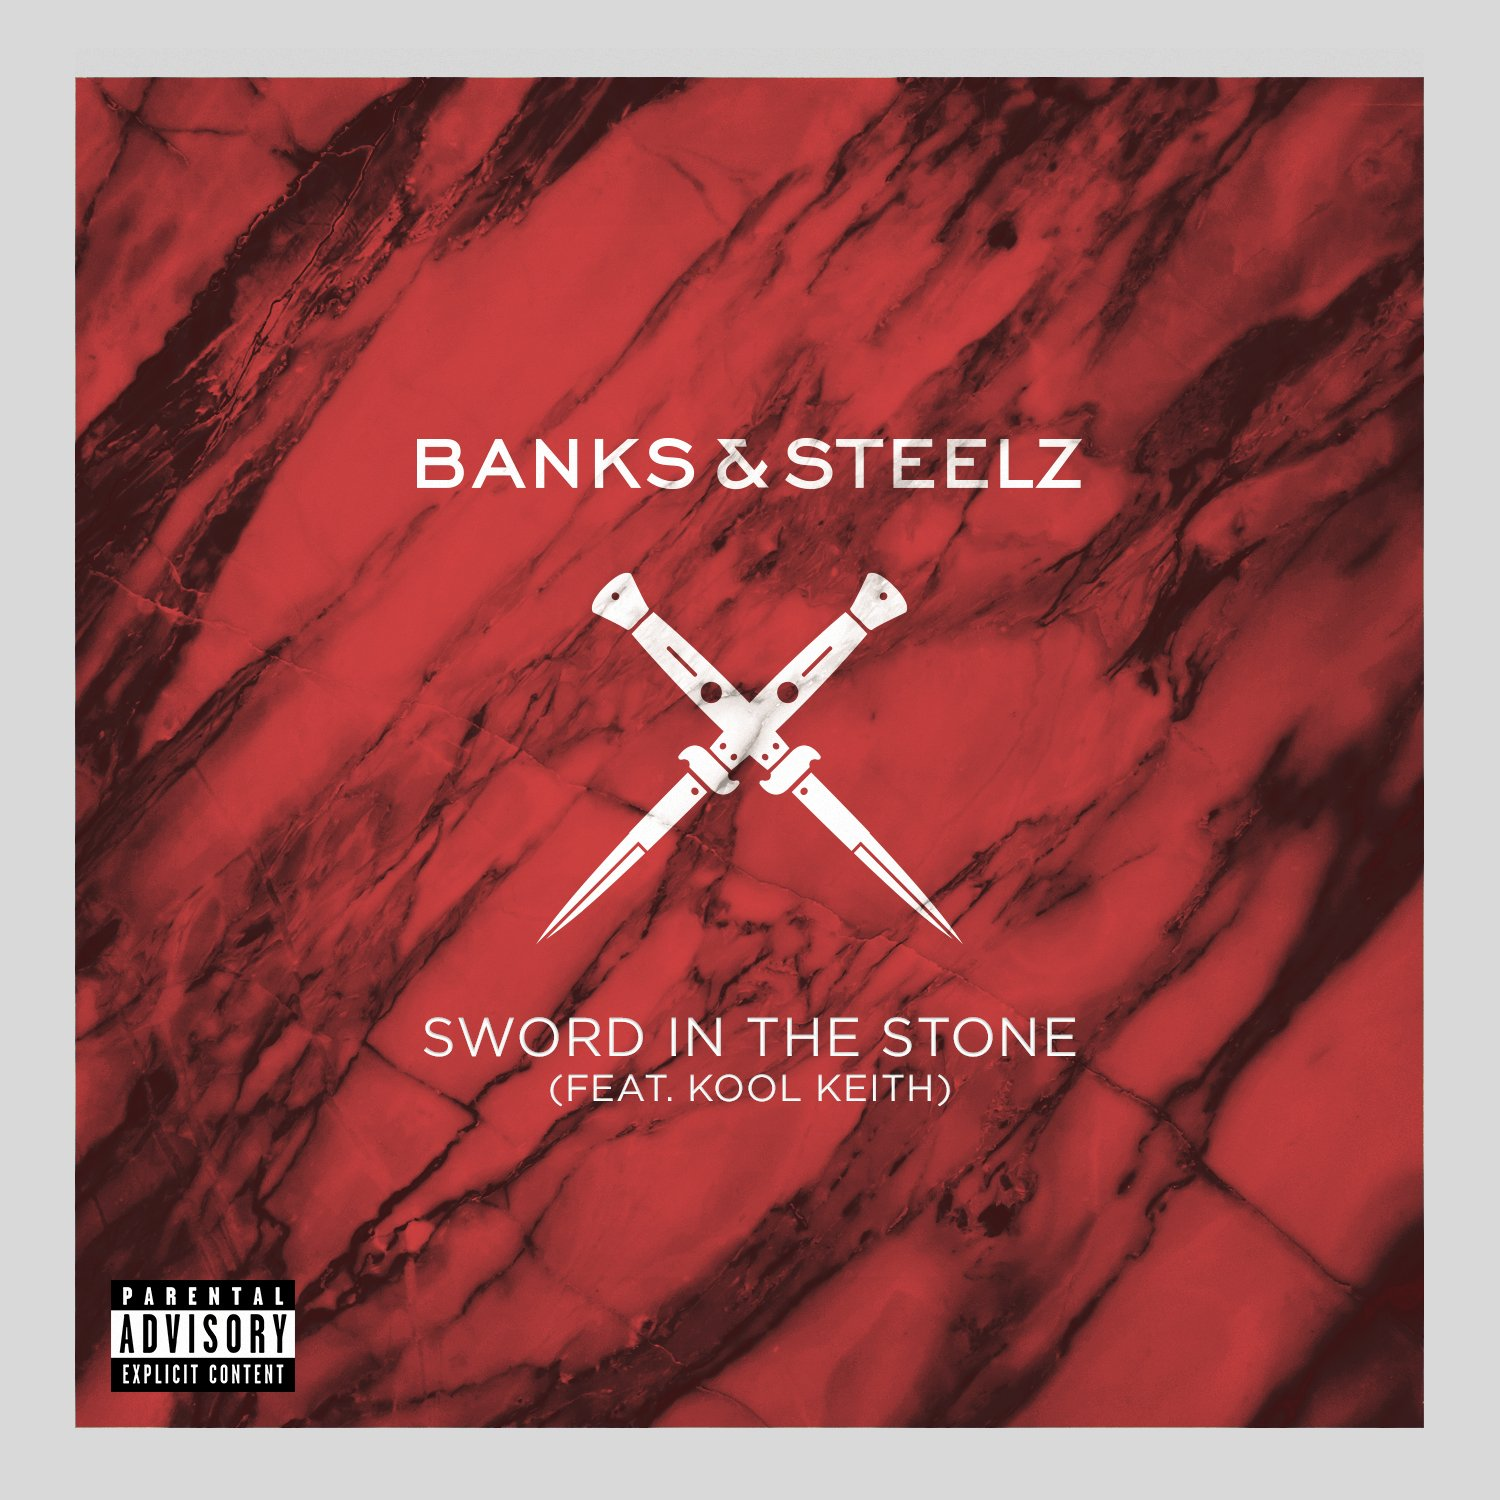 RT @banksandsteelz: Listen to Sword In The Stone feat. Kool Keith from @ZaneLowe's #WorldFirst on @Beats1 🔪 https://t.co/qNXDl1e6ia https:/…